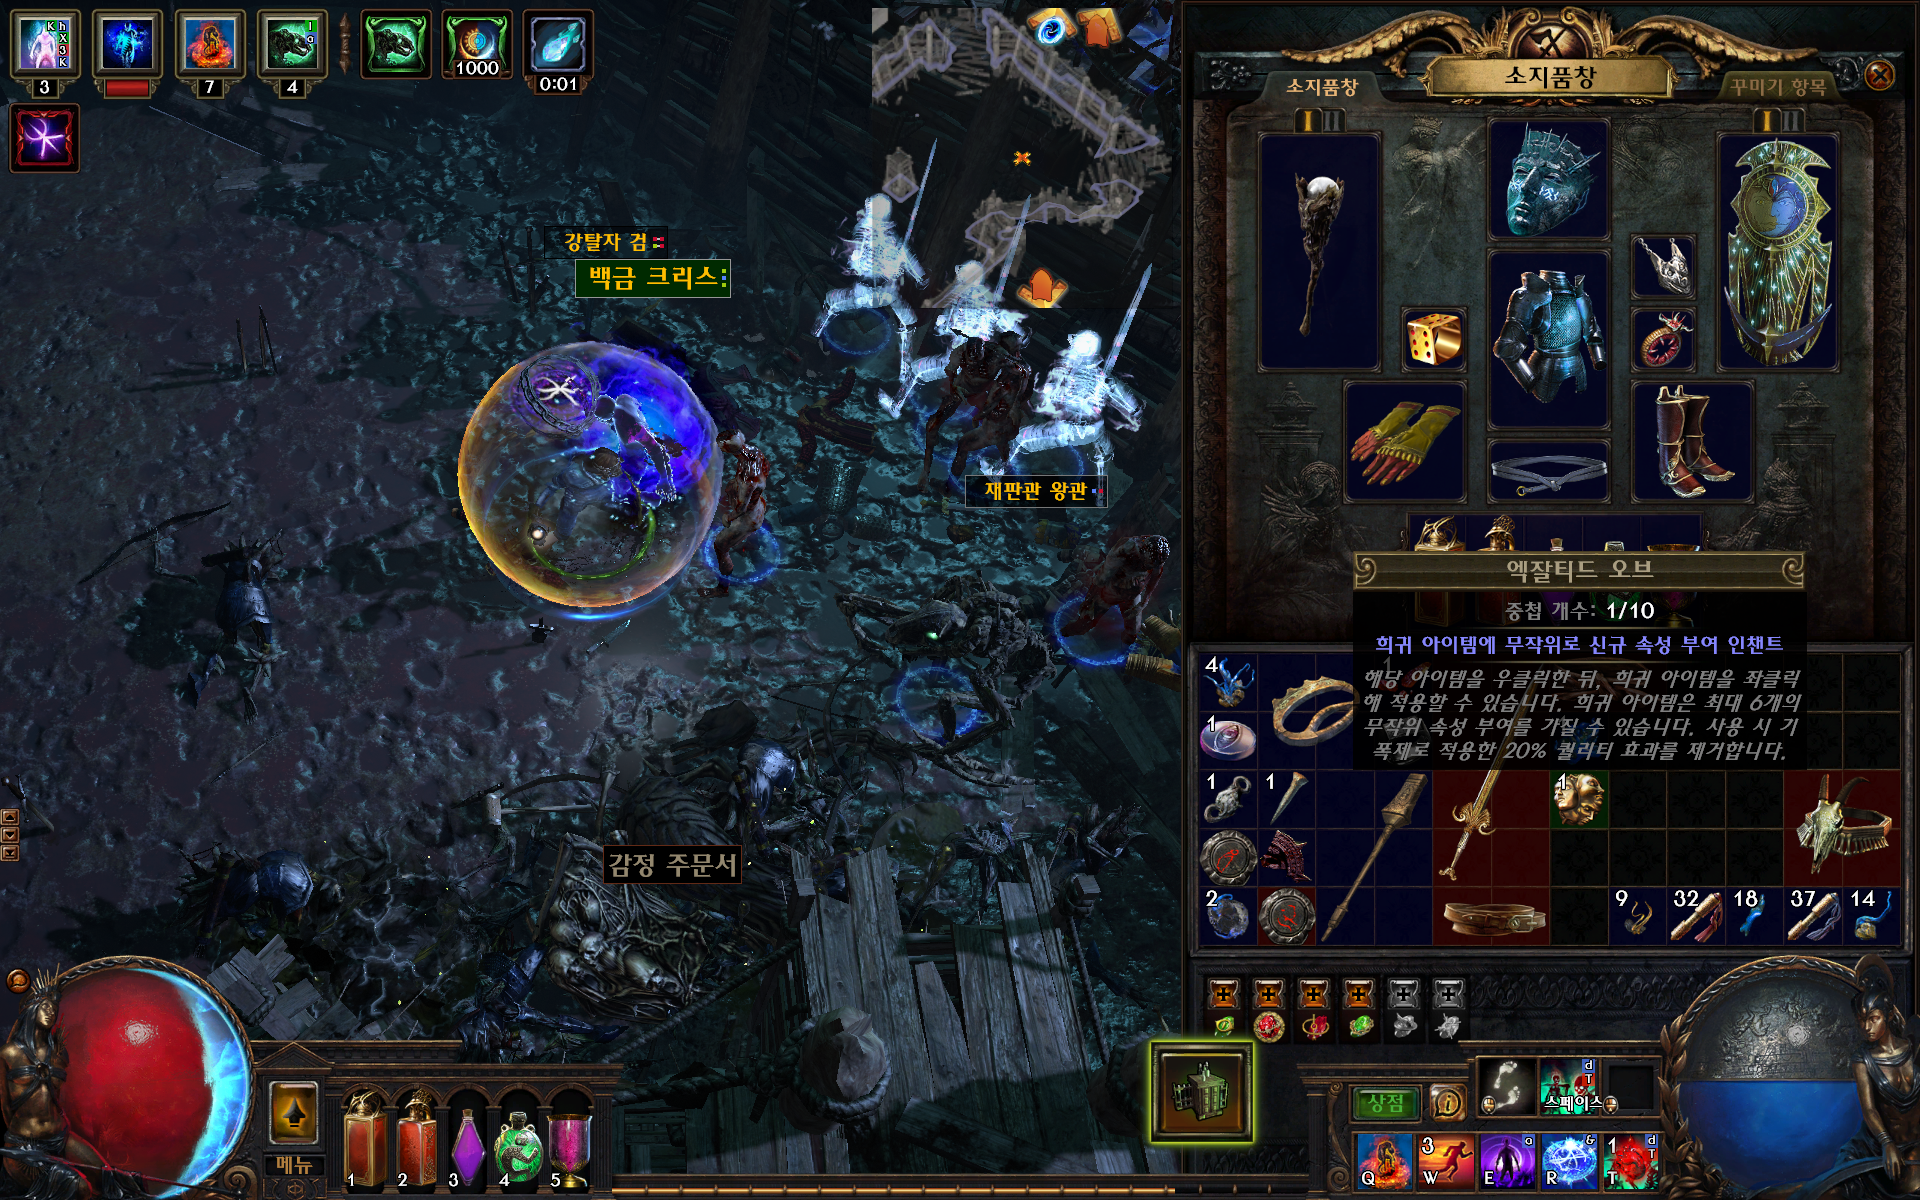 Path of Exile 2020-01-11 오후 12_43_56.png